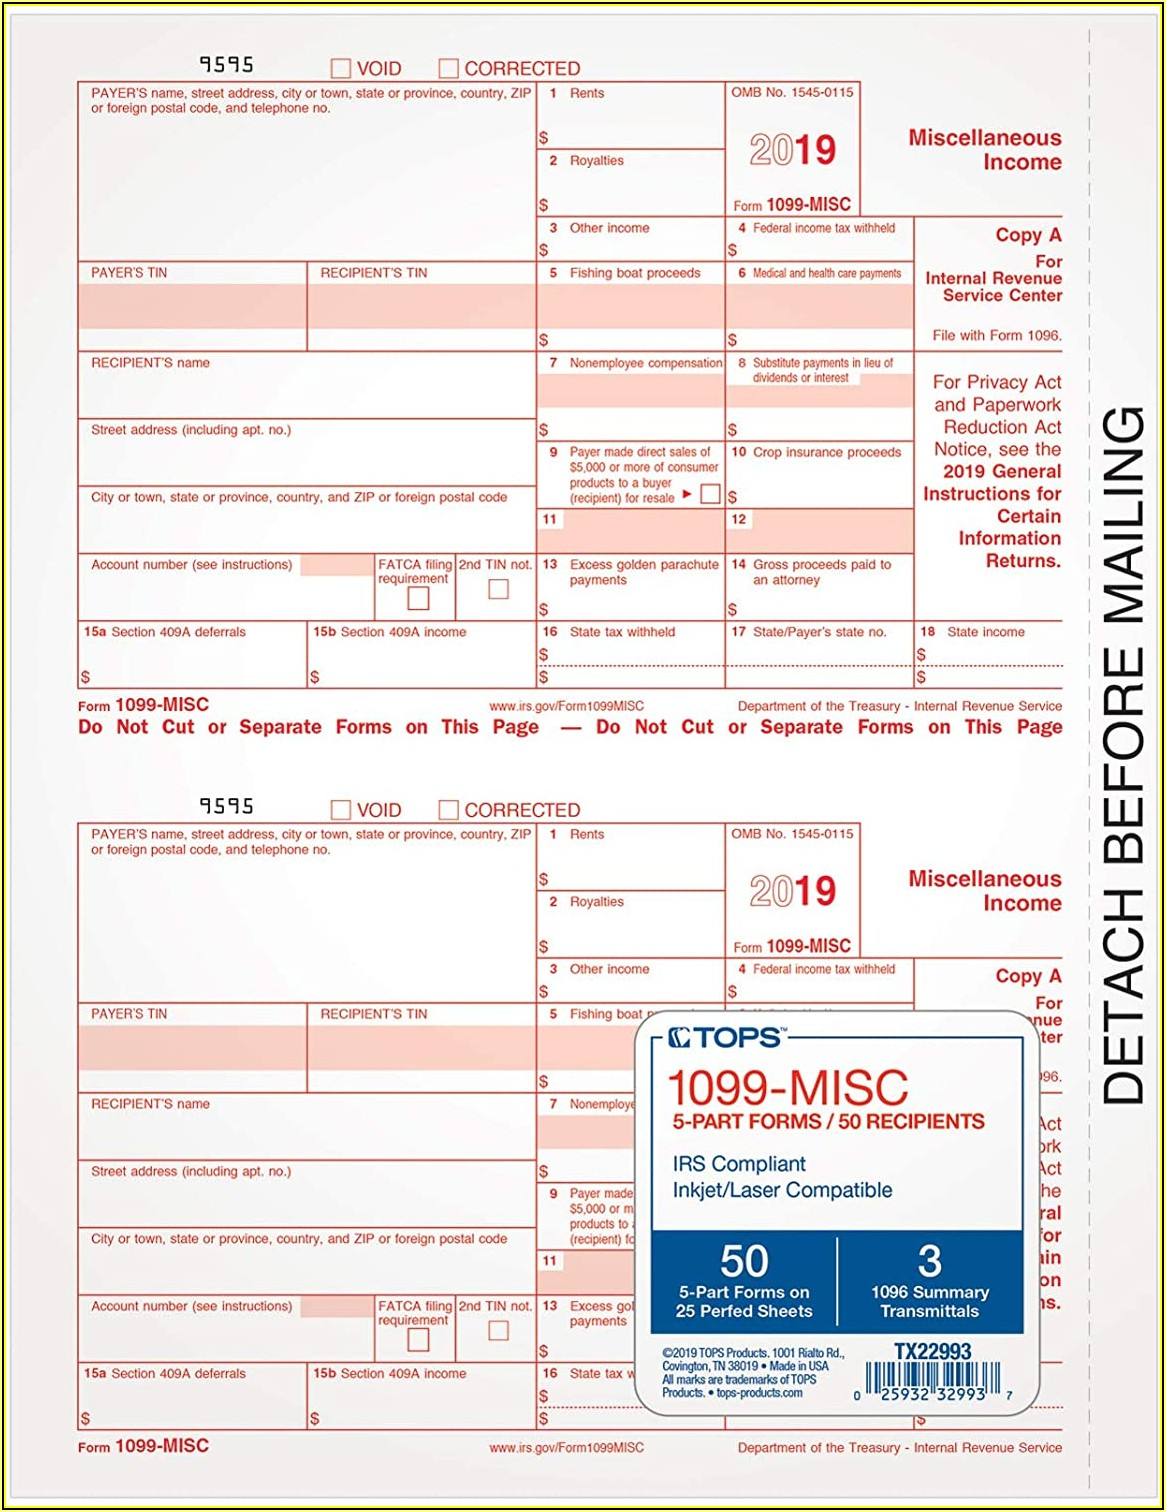 Where Can I Get 1099 Misc Tax Forms